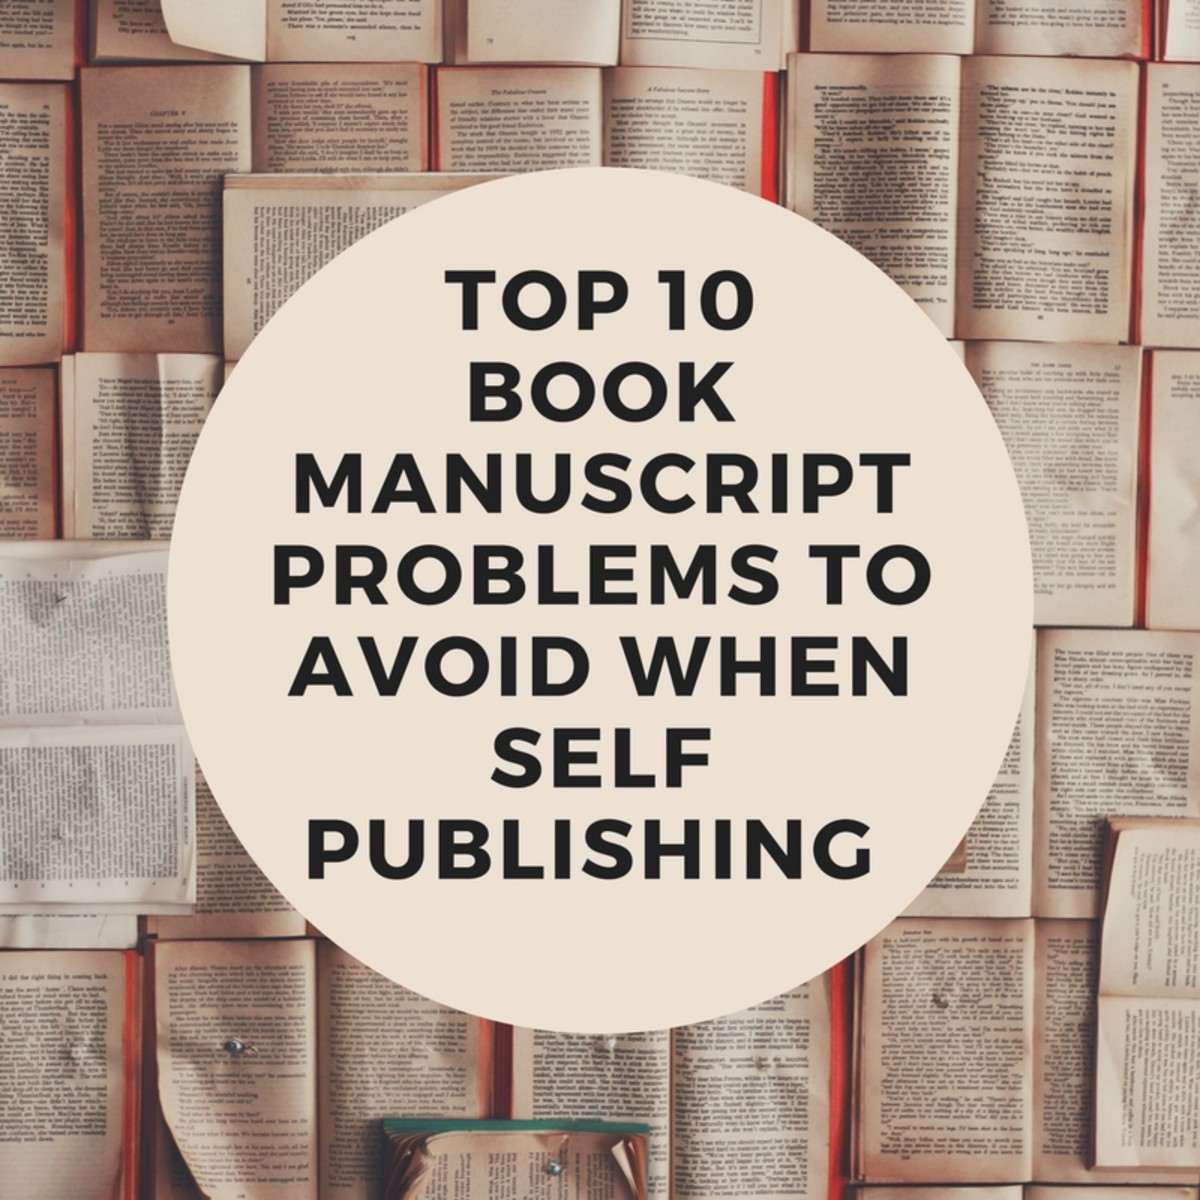 Learn what to avoid when self-publishing so that you can be proud of your first book.